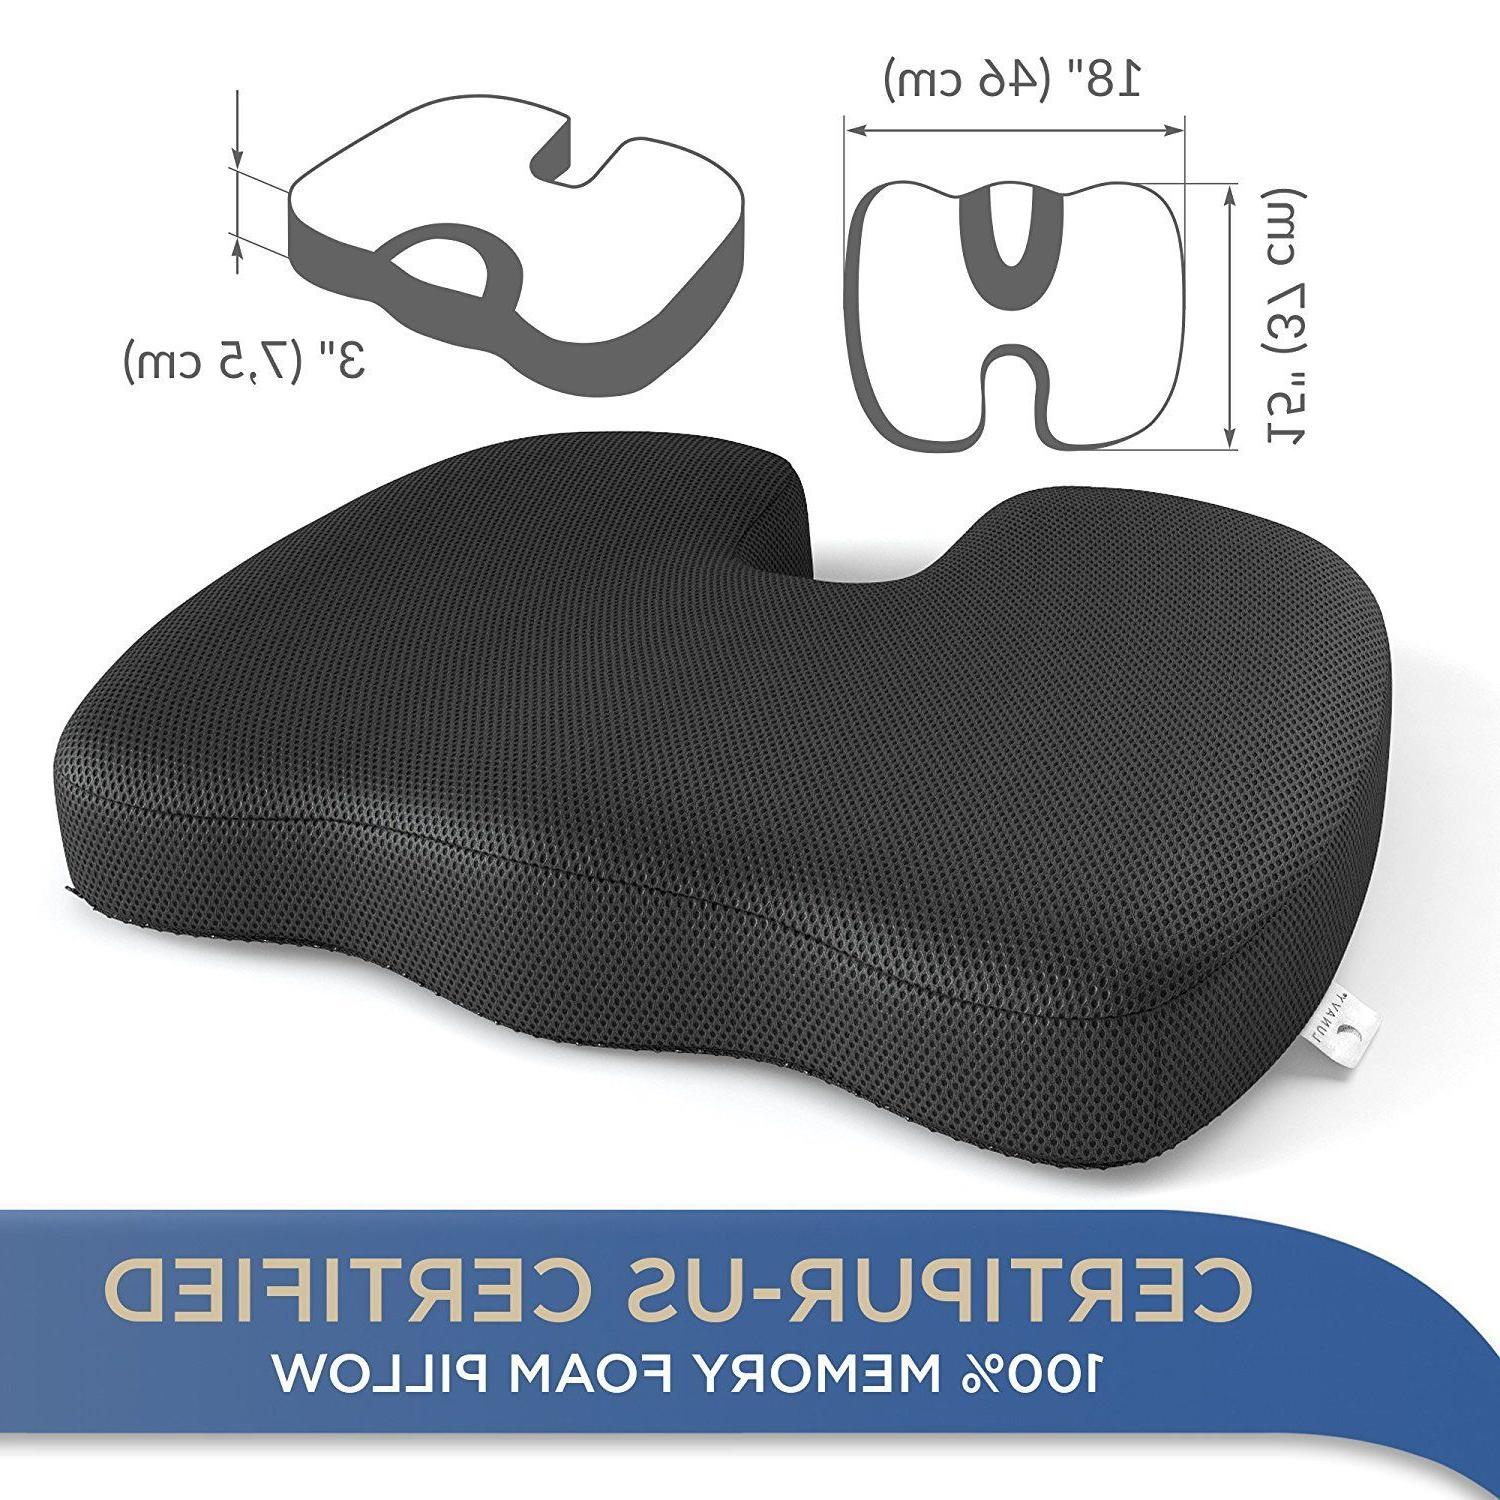 Premium Seat Cushion Perfect Portable Padded Pillow